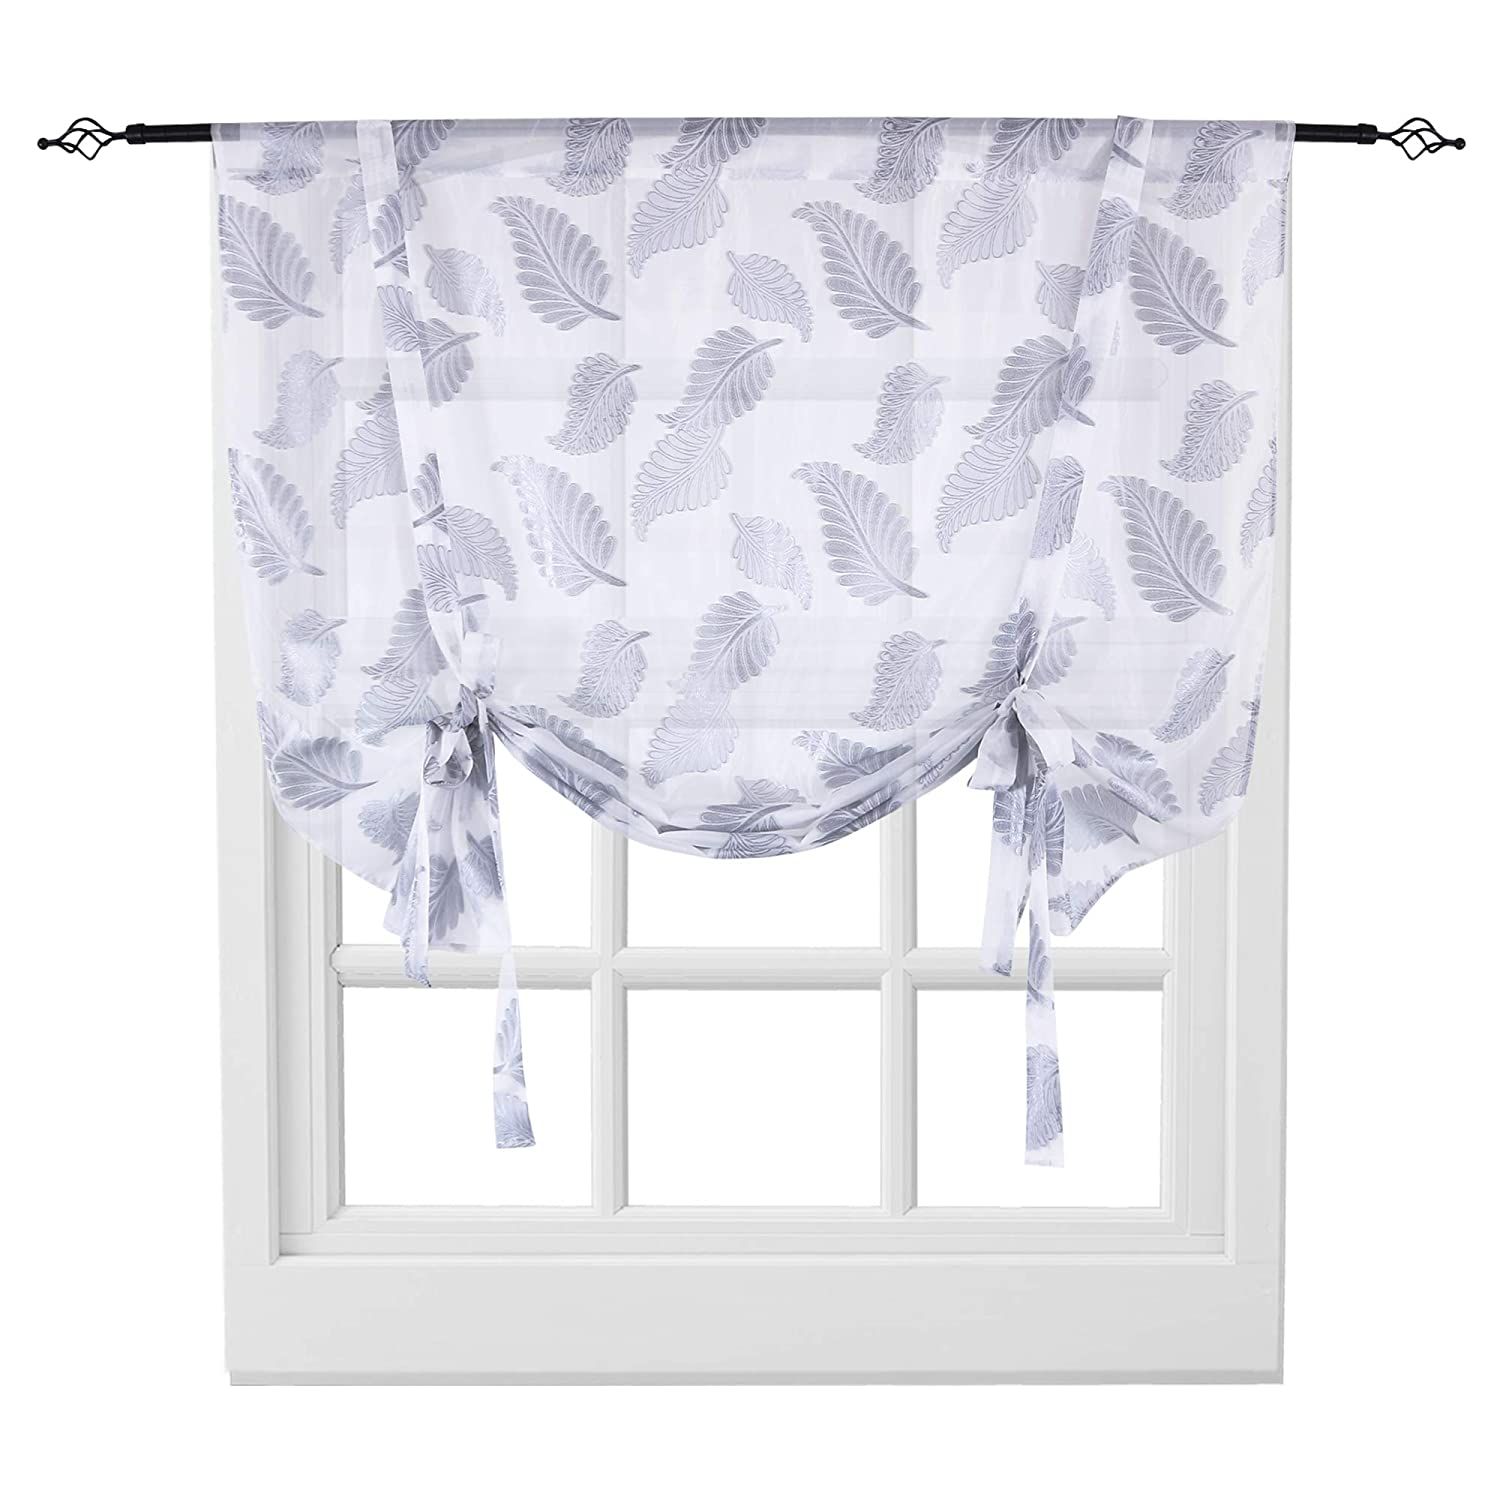 KEQIAOSUOCAI Sheer Tie Up Curtains Leaves Jacquard Rod Pocket Short Balloon  Shades for Window Kitchen Sheer Valance 1 Panel Curtain 52 by 63 Inches ...